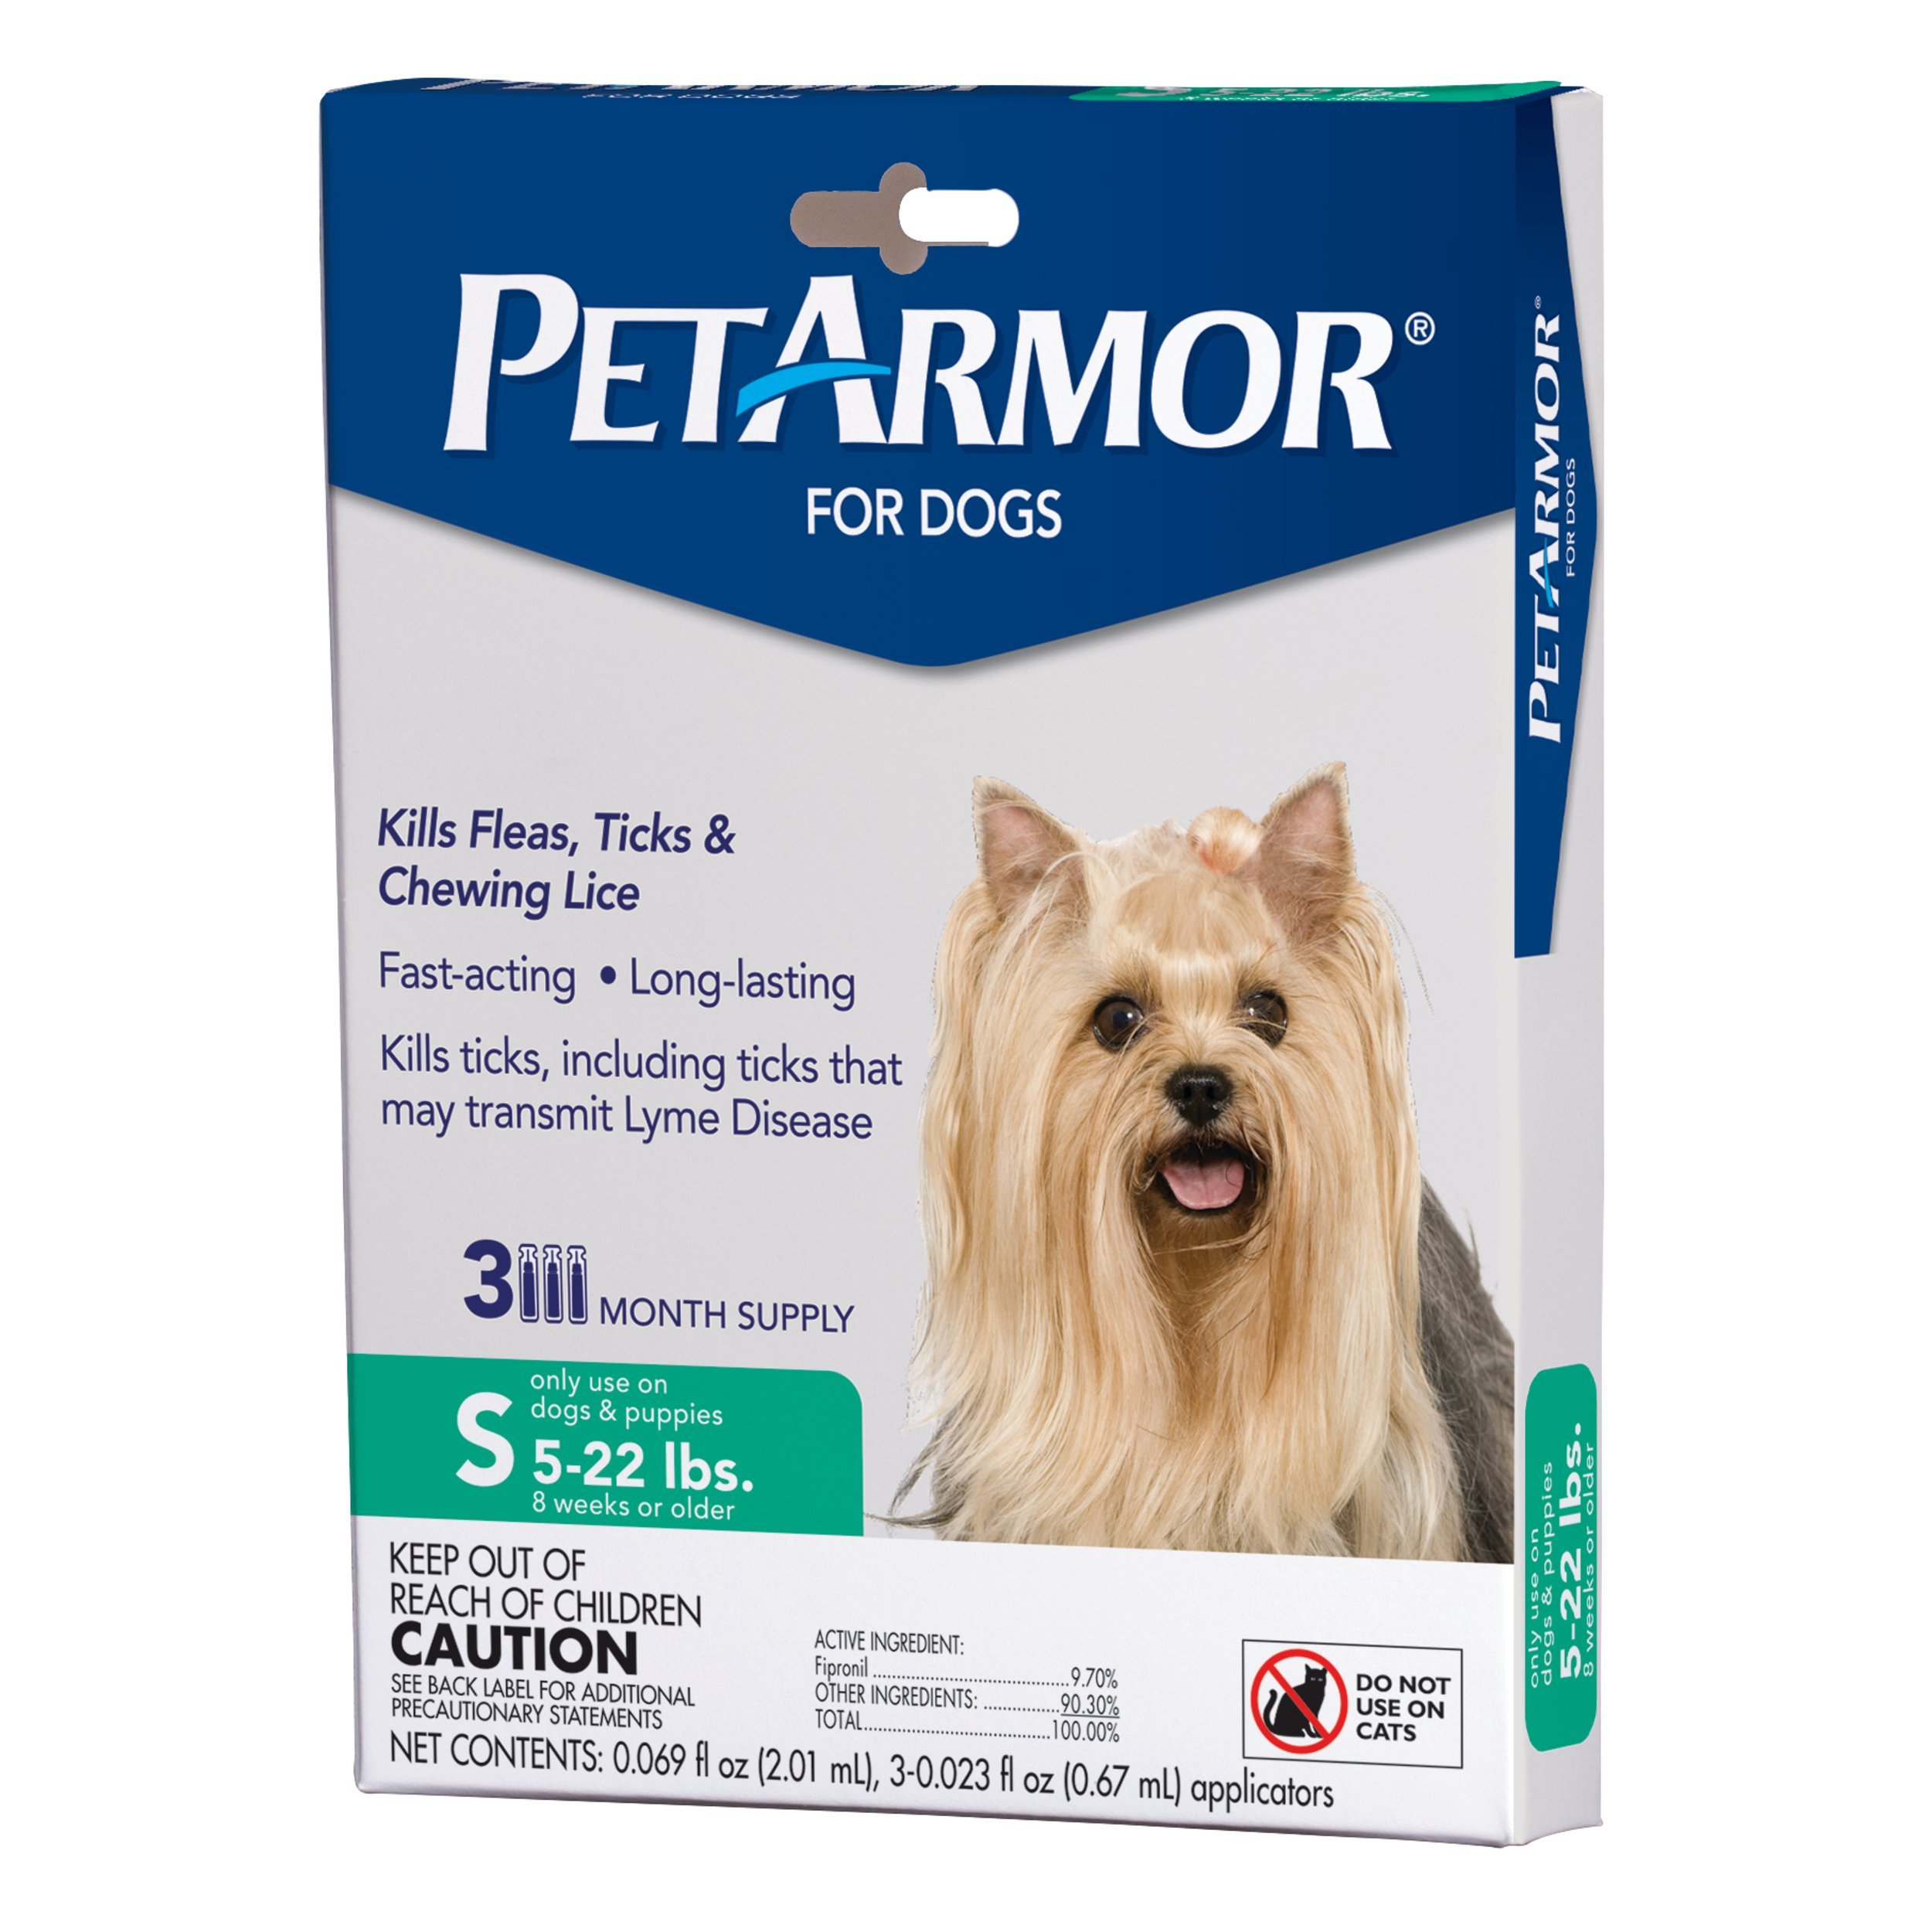 PetArmor for Dogs, Flea and Tick Treatment for Small Dogs (5-22 Pounds), Includes 3 Month Supply of Topical Flea Treatments by PETARMOR